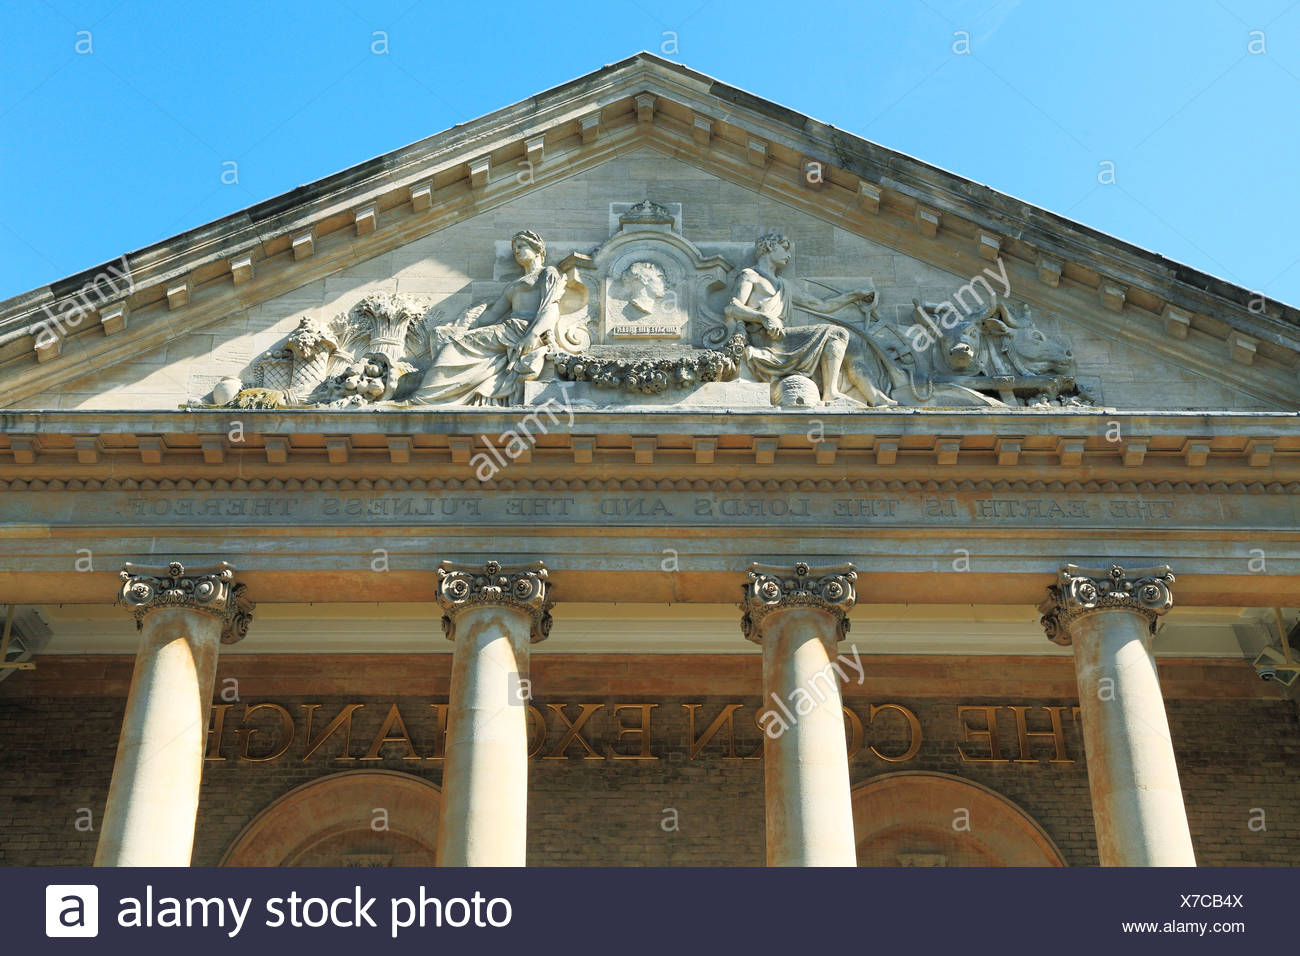 Bury St. Edmunds, Corn Exchange Pediment, Victorian Classical style, Suffolk, England UK - Stock Image